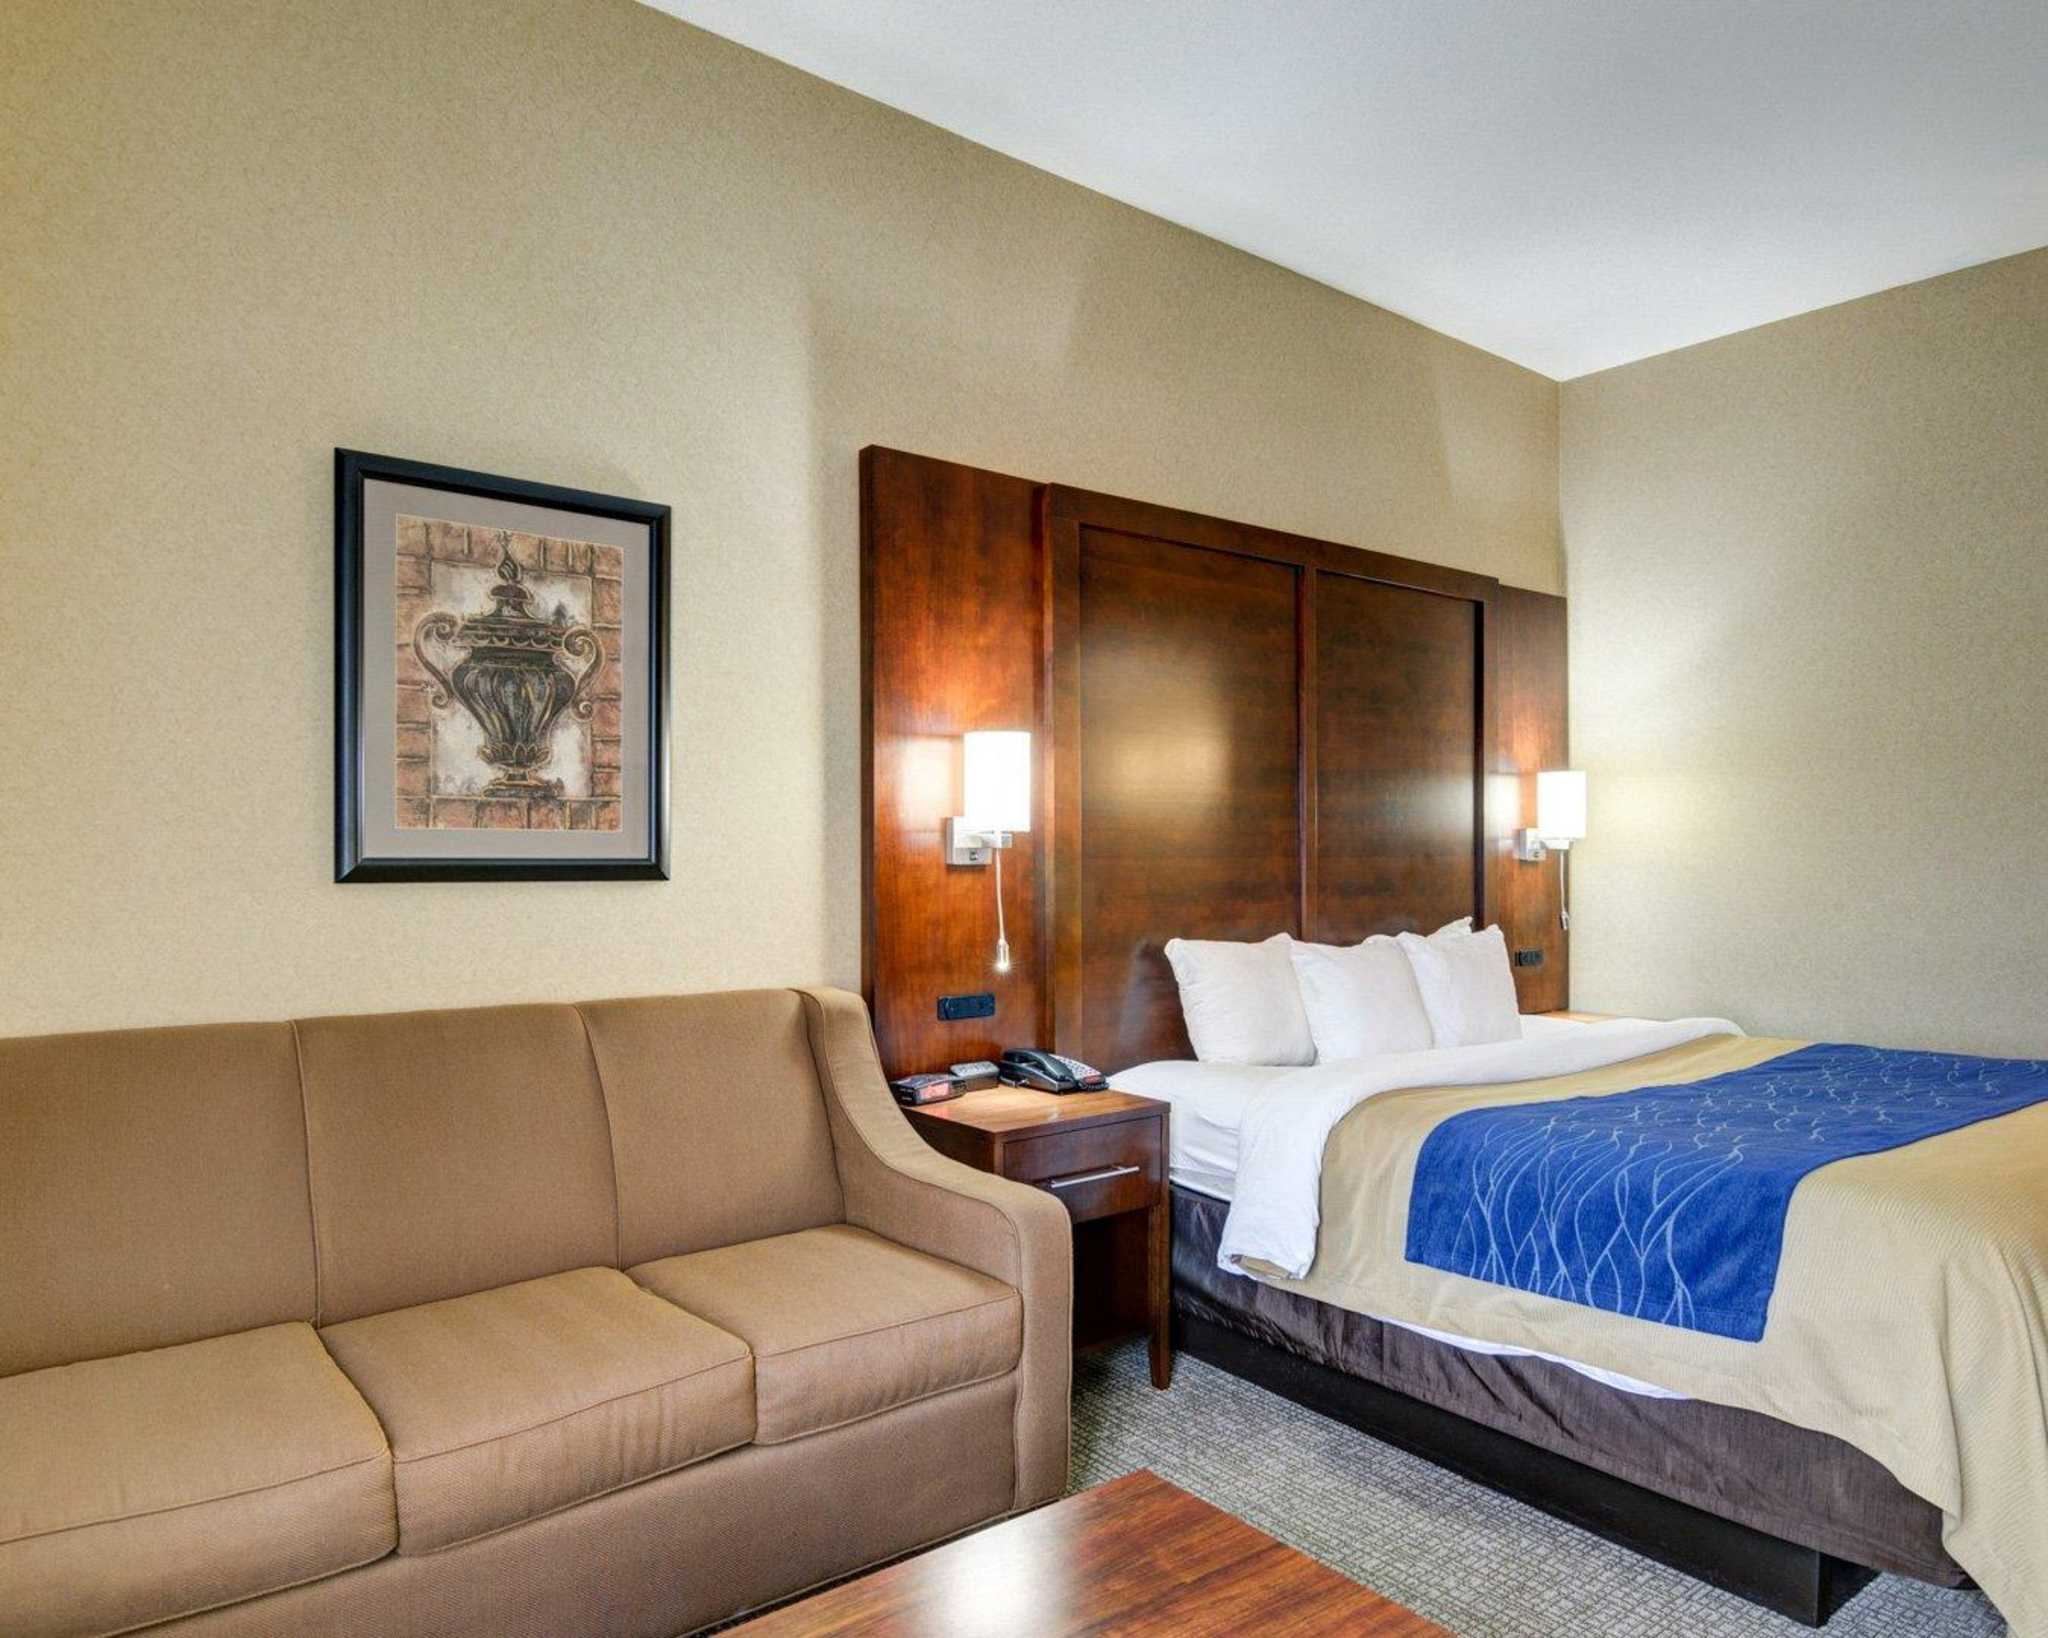 Comfort Inn And Suites Conway Ar.Comfort Inn Suites In Conway AR ...